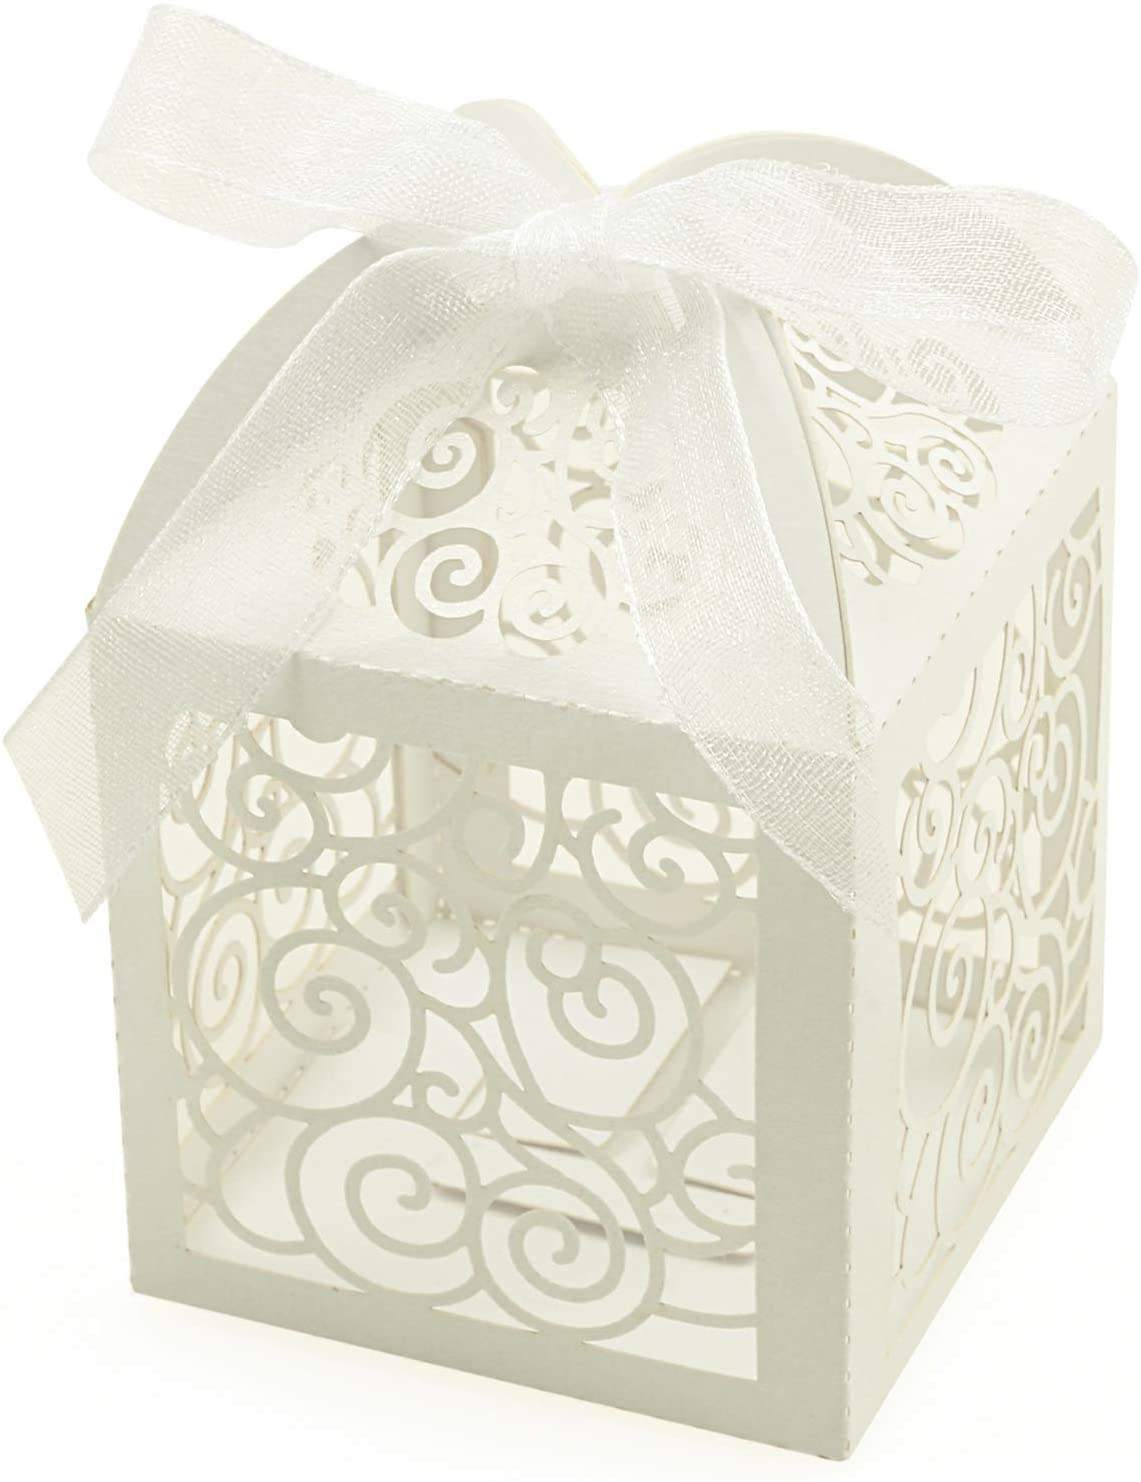 Manufacturer Laser Cut Rose Candy Boxes White Favor Boxes Gift Boxes for Bridal Shower Anniverary Birthday Party Favor